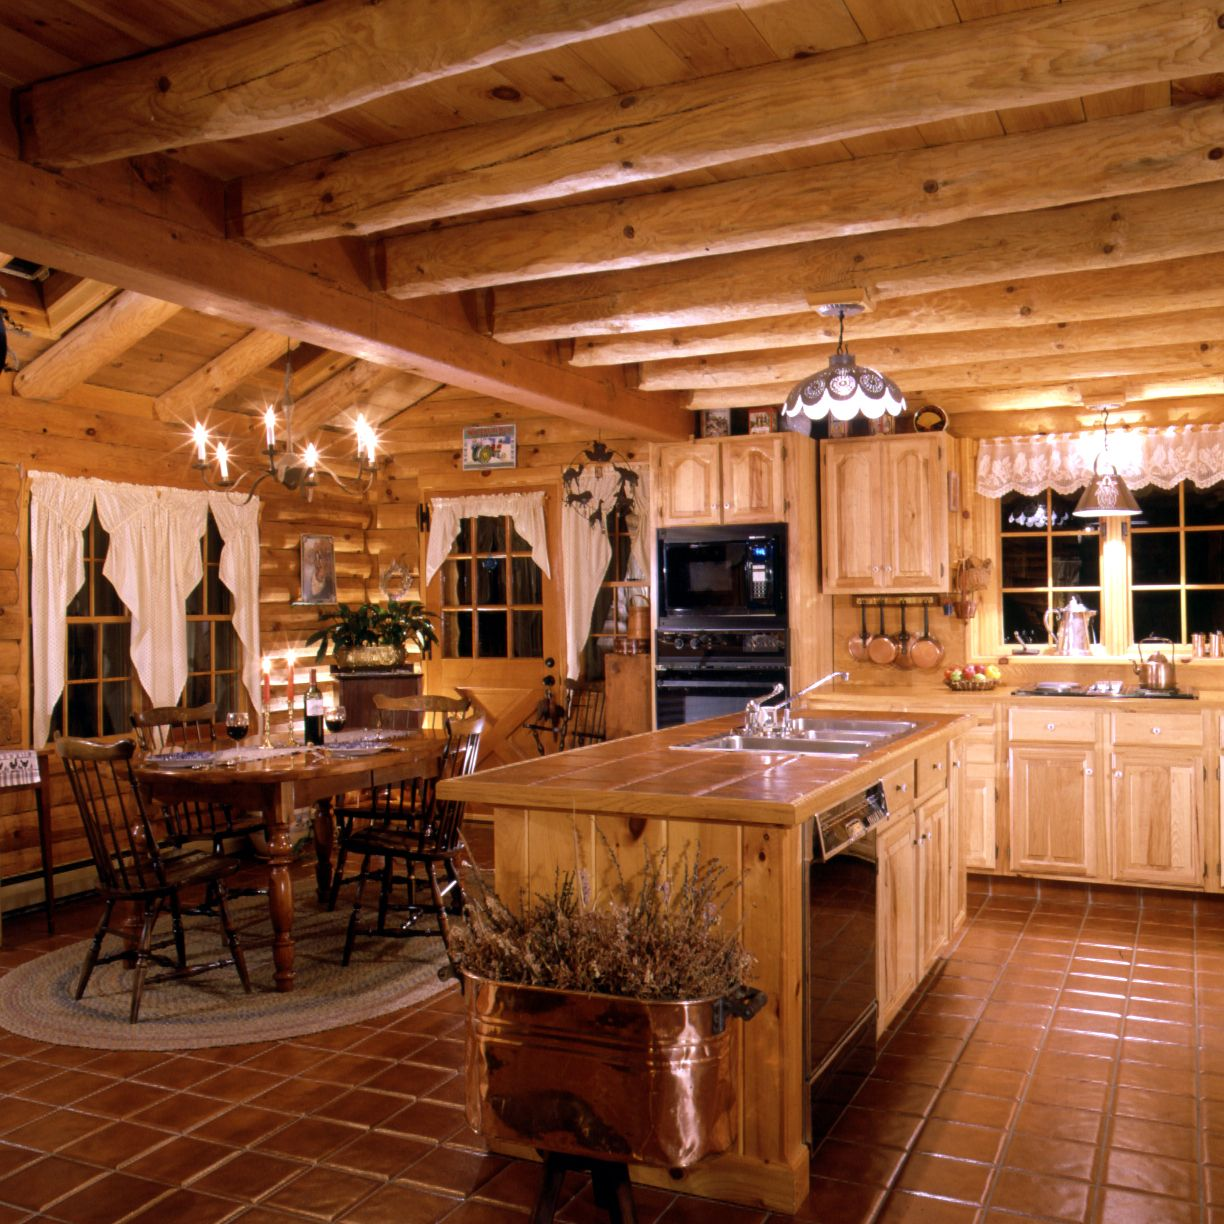 Ordinaire Log Home Kitchen ~ Warmth Of Tiles For Island Counter And Floors